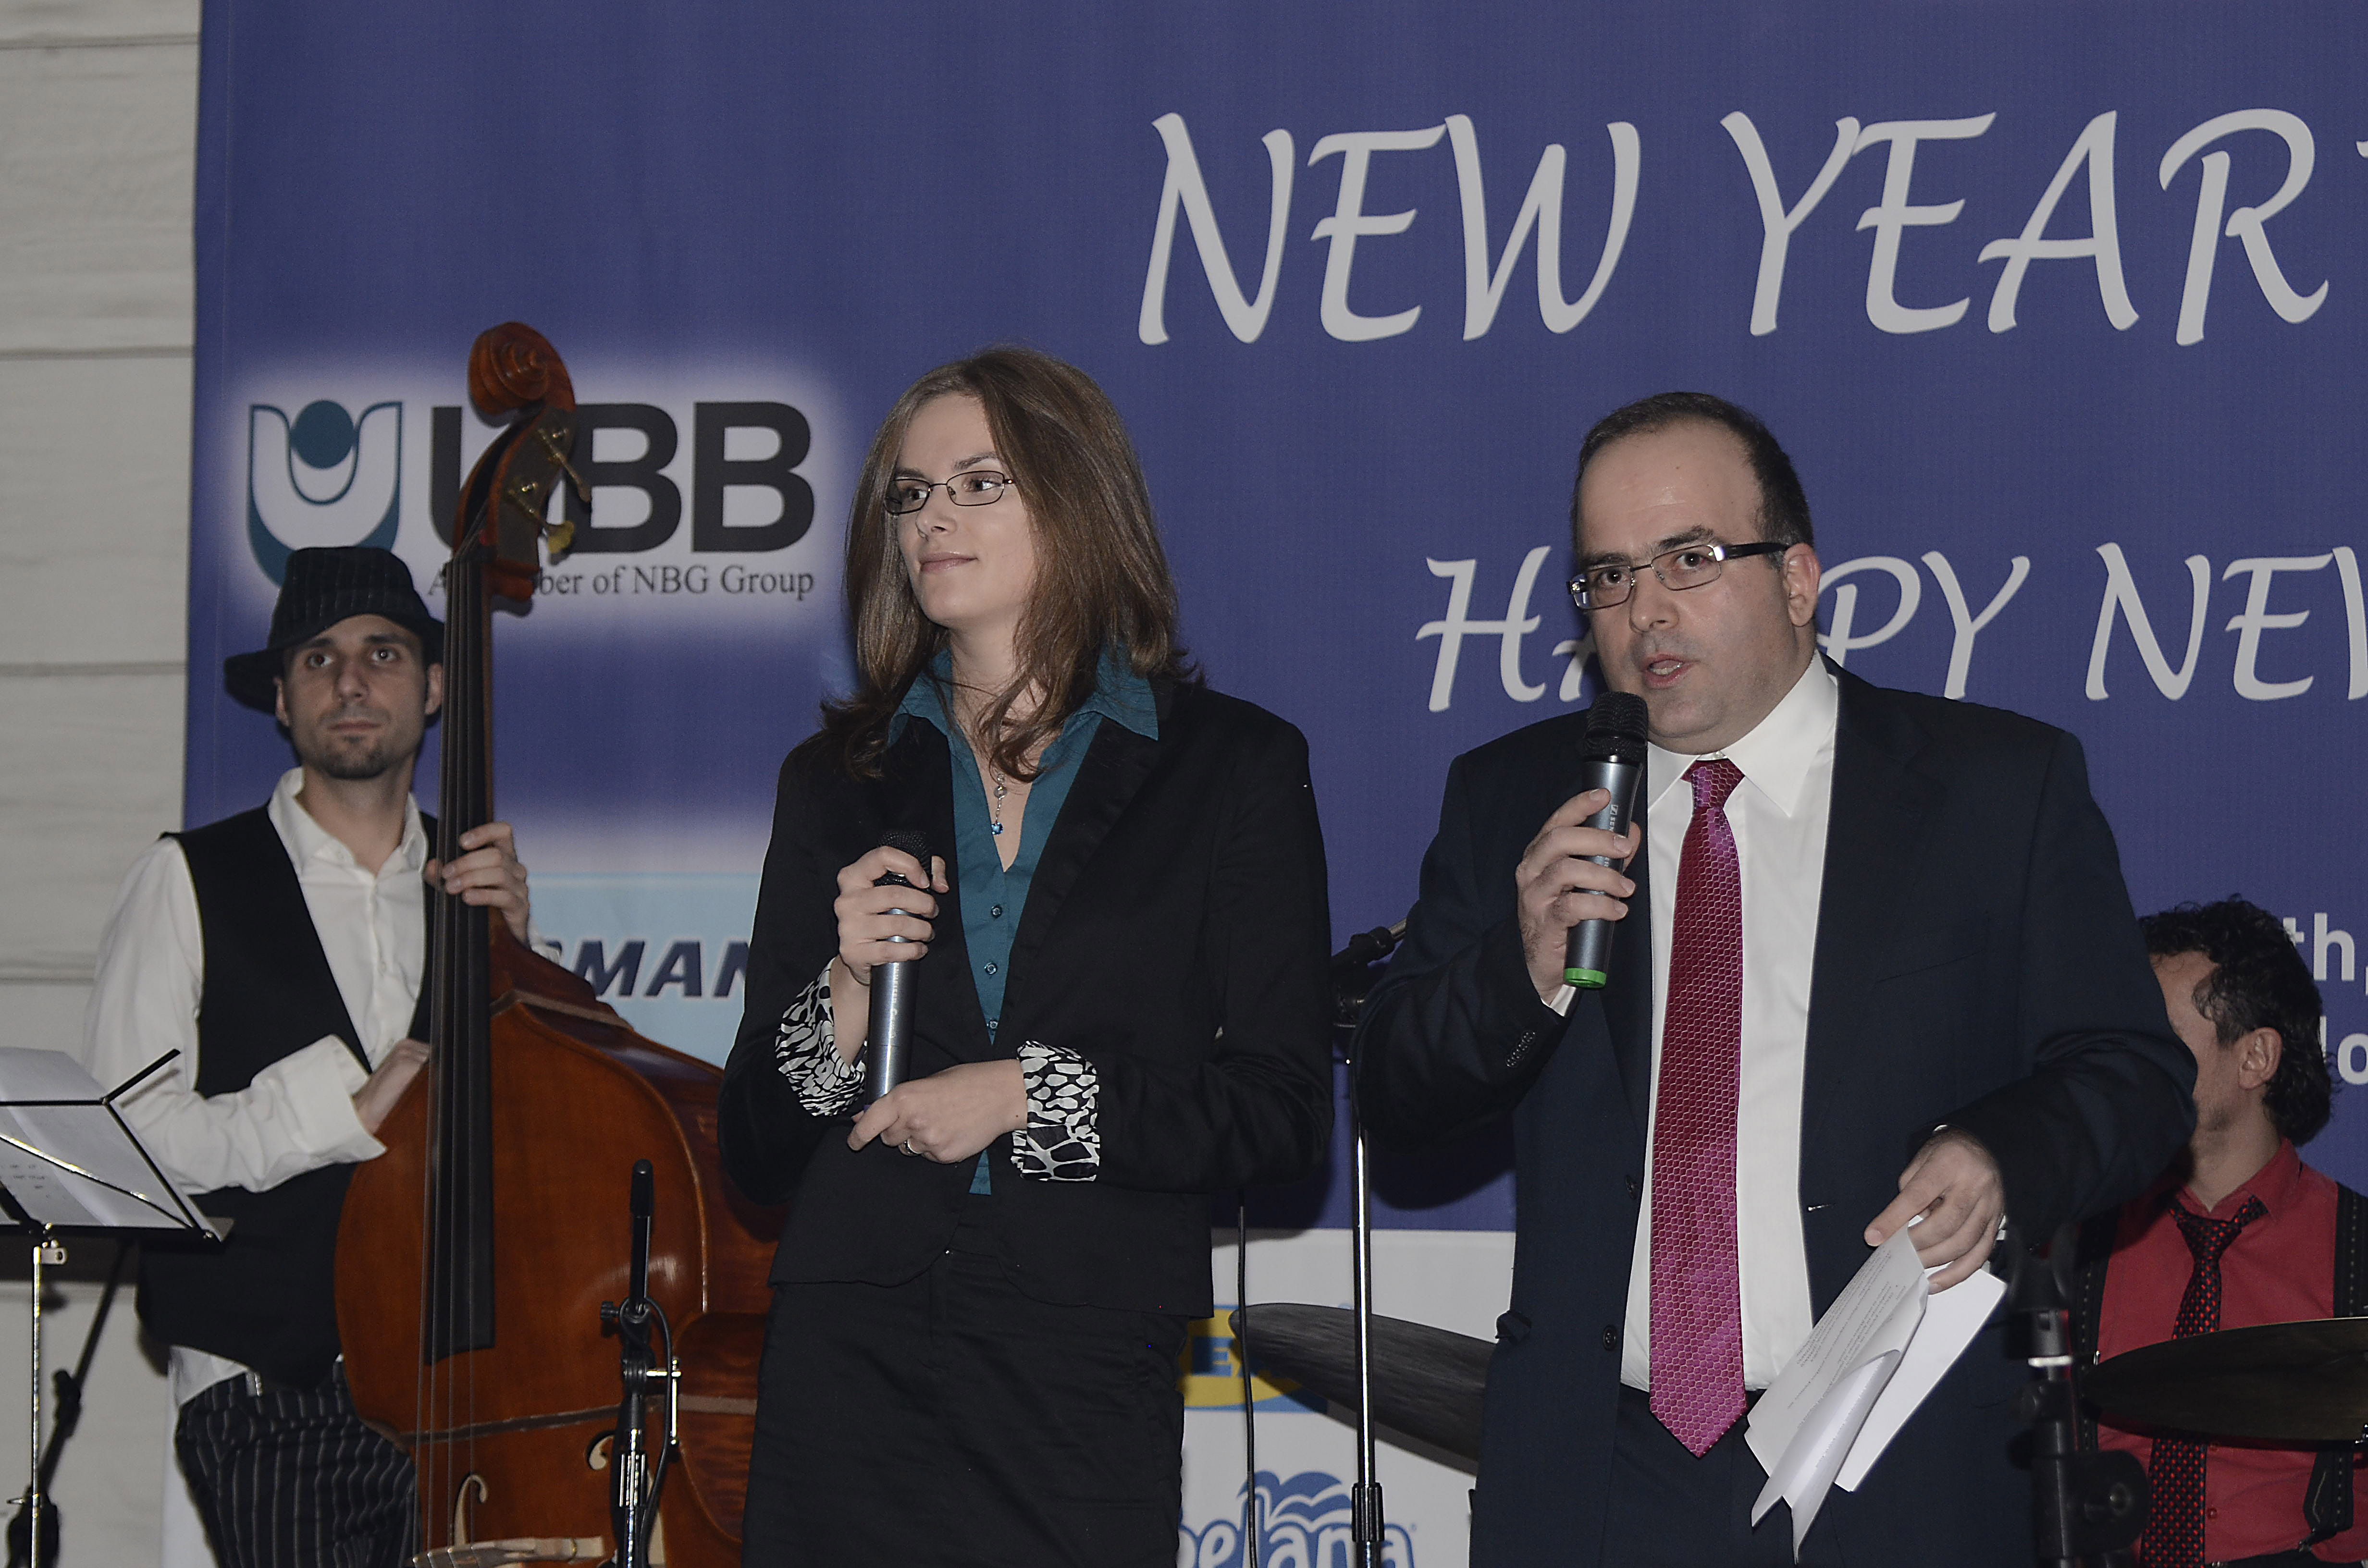 HBCB marked the beginning of the new 2012 with unforgettable party